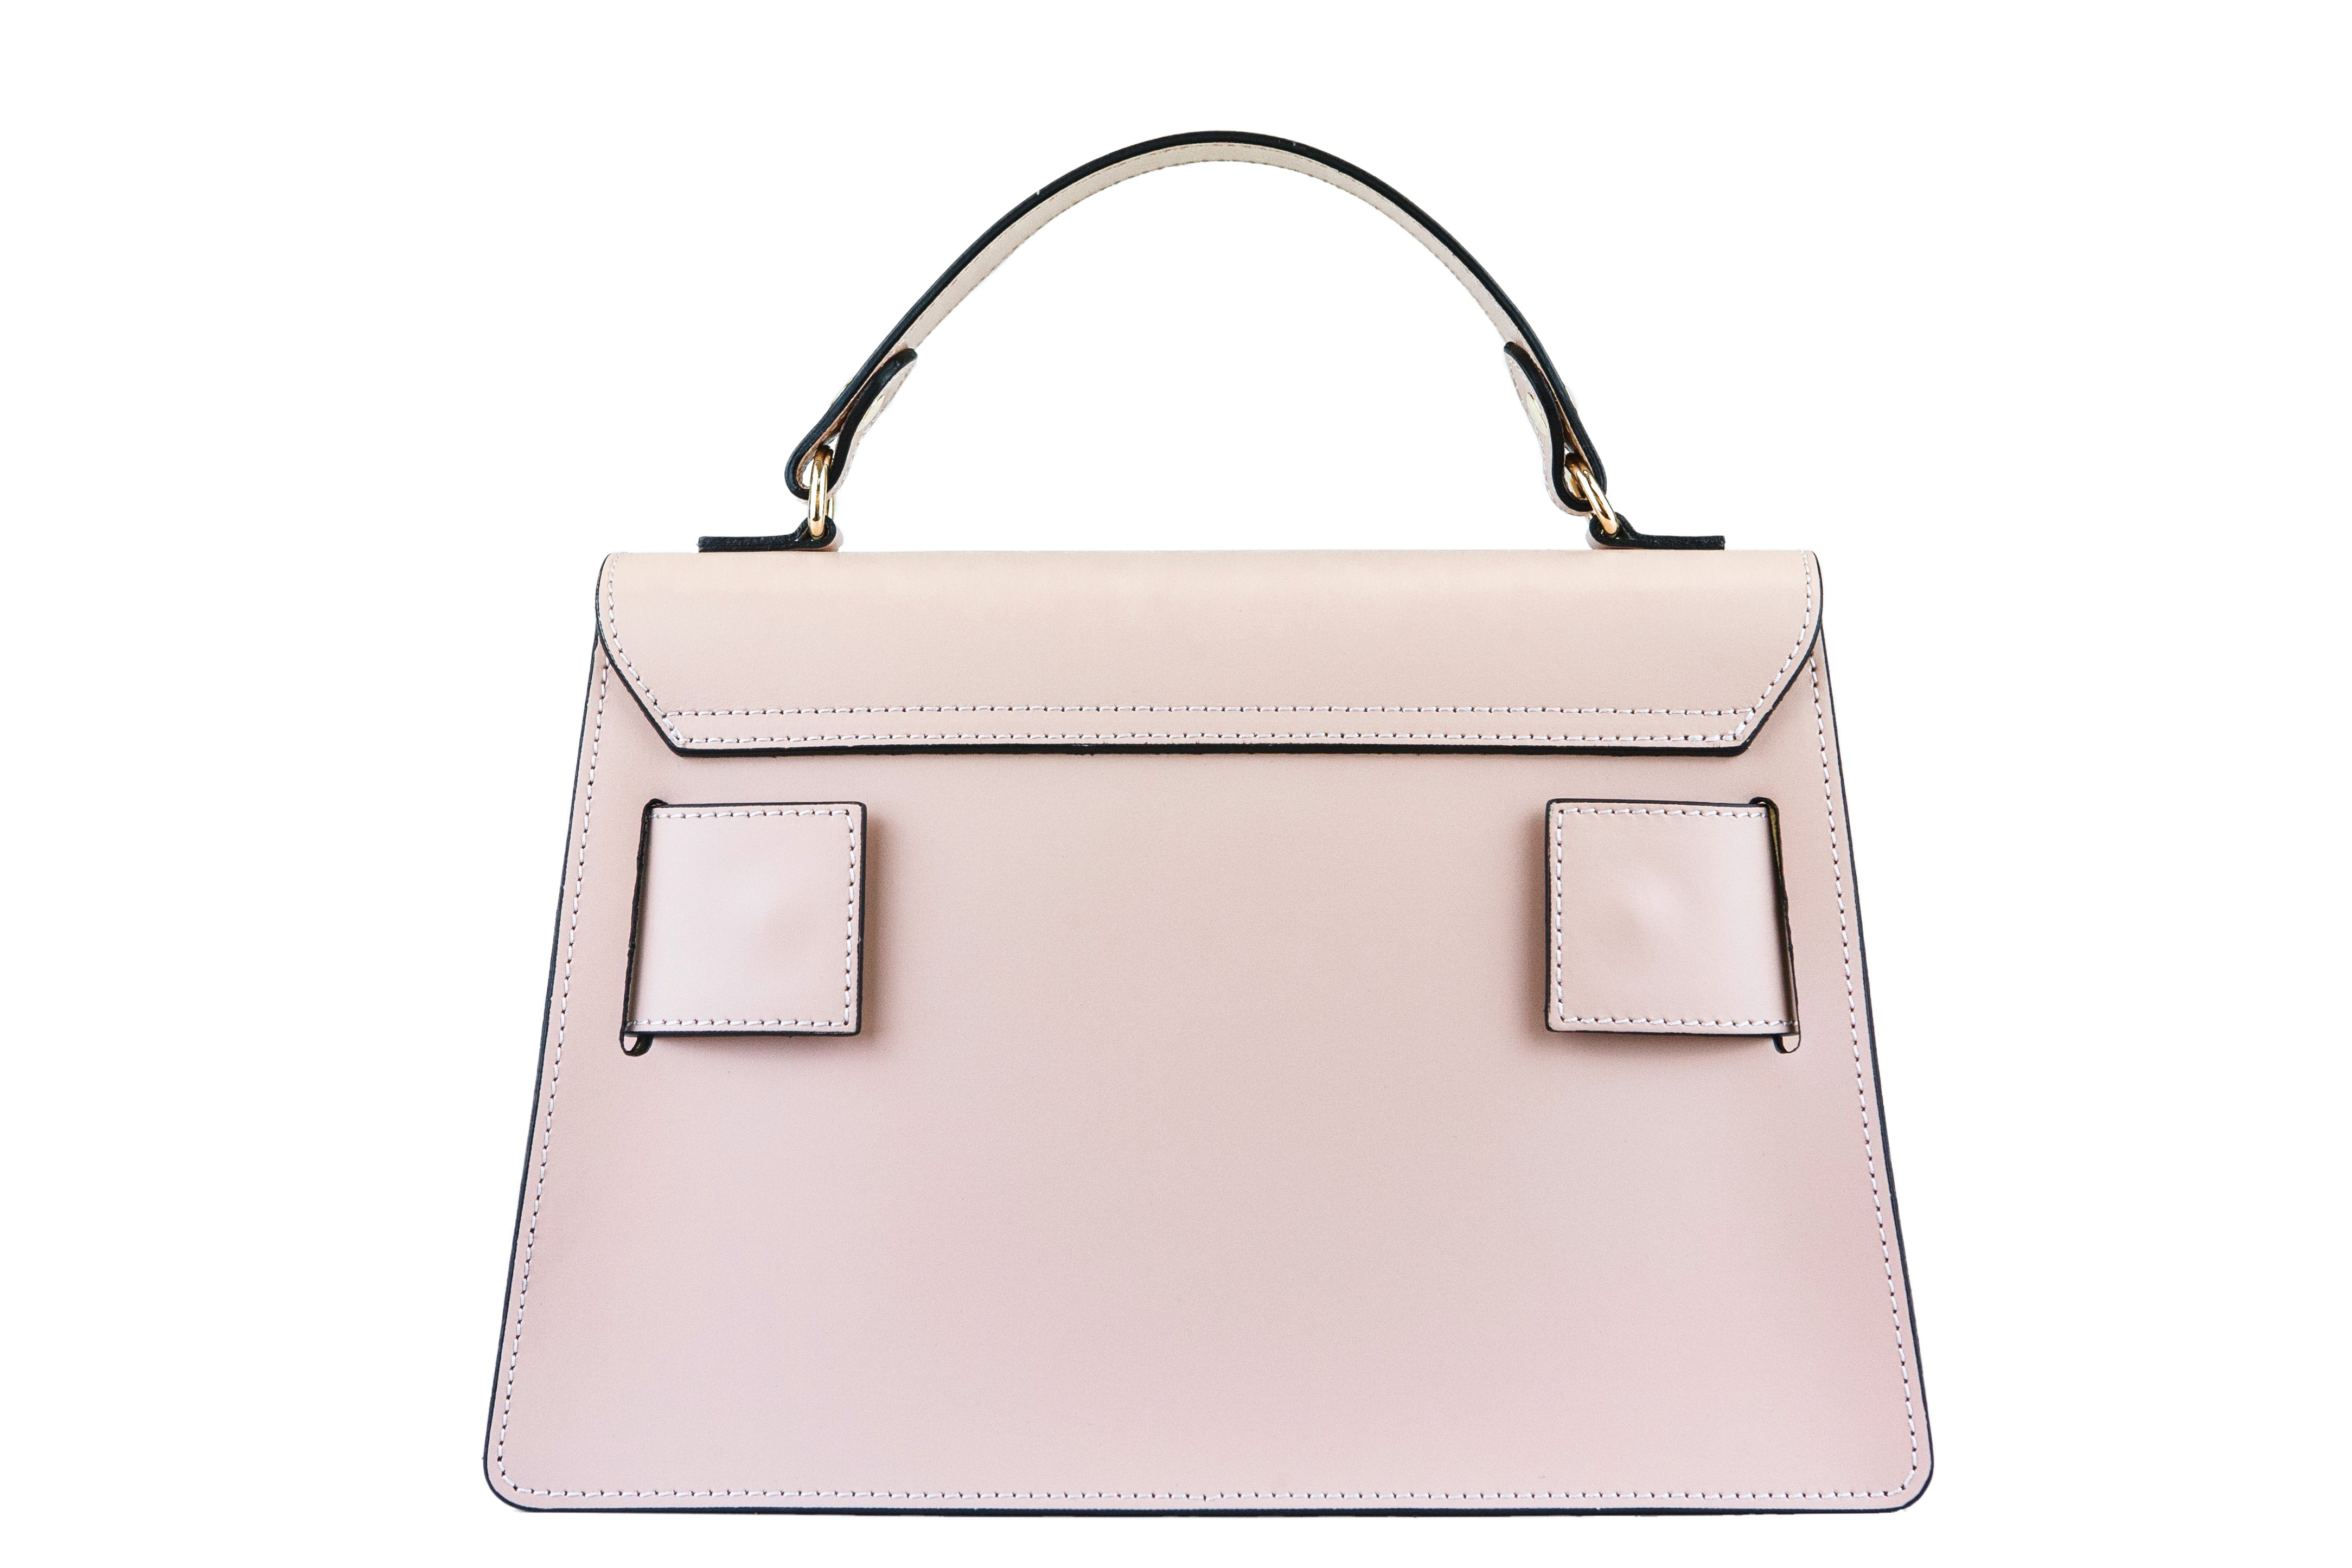 Freesia - Belted Leather Handbag